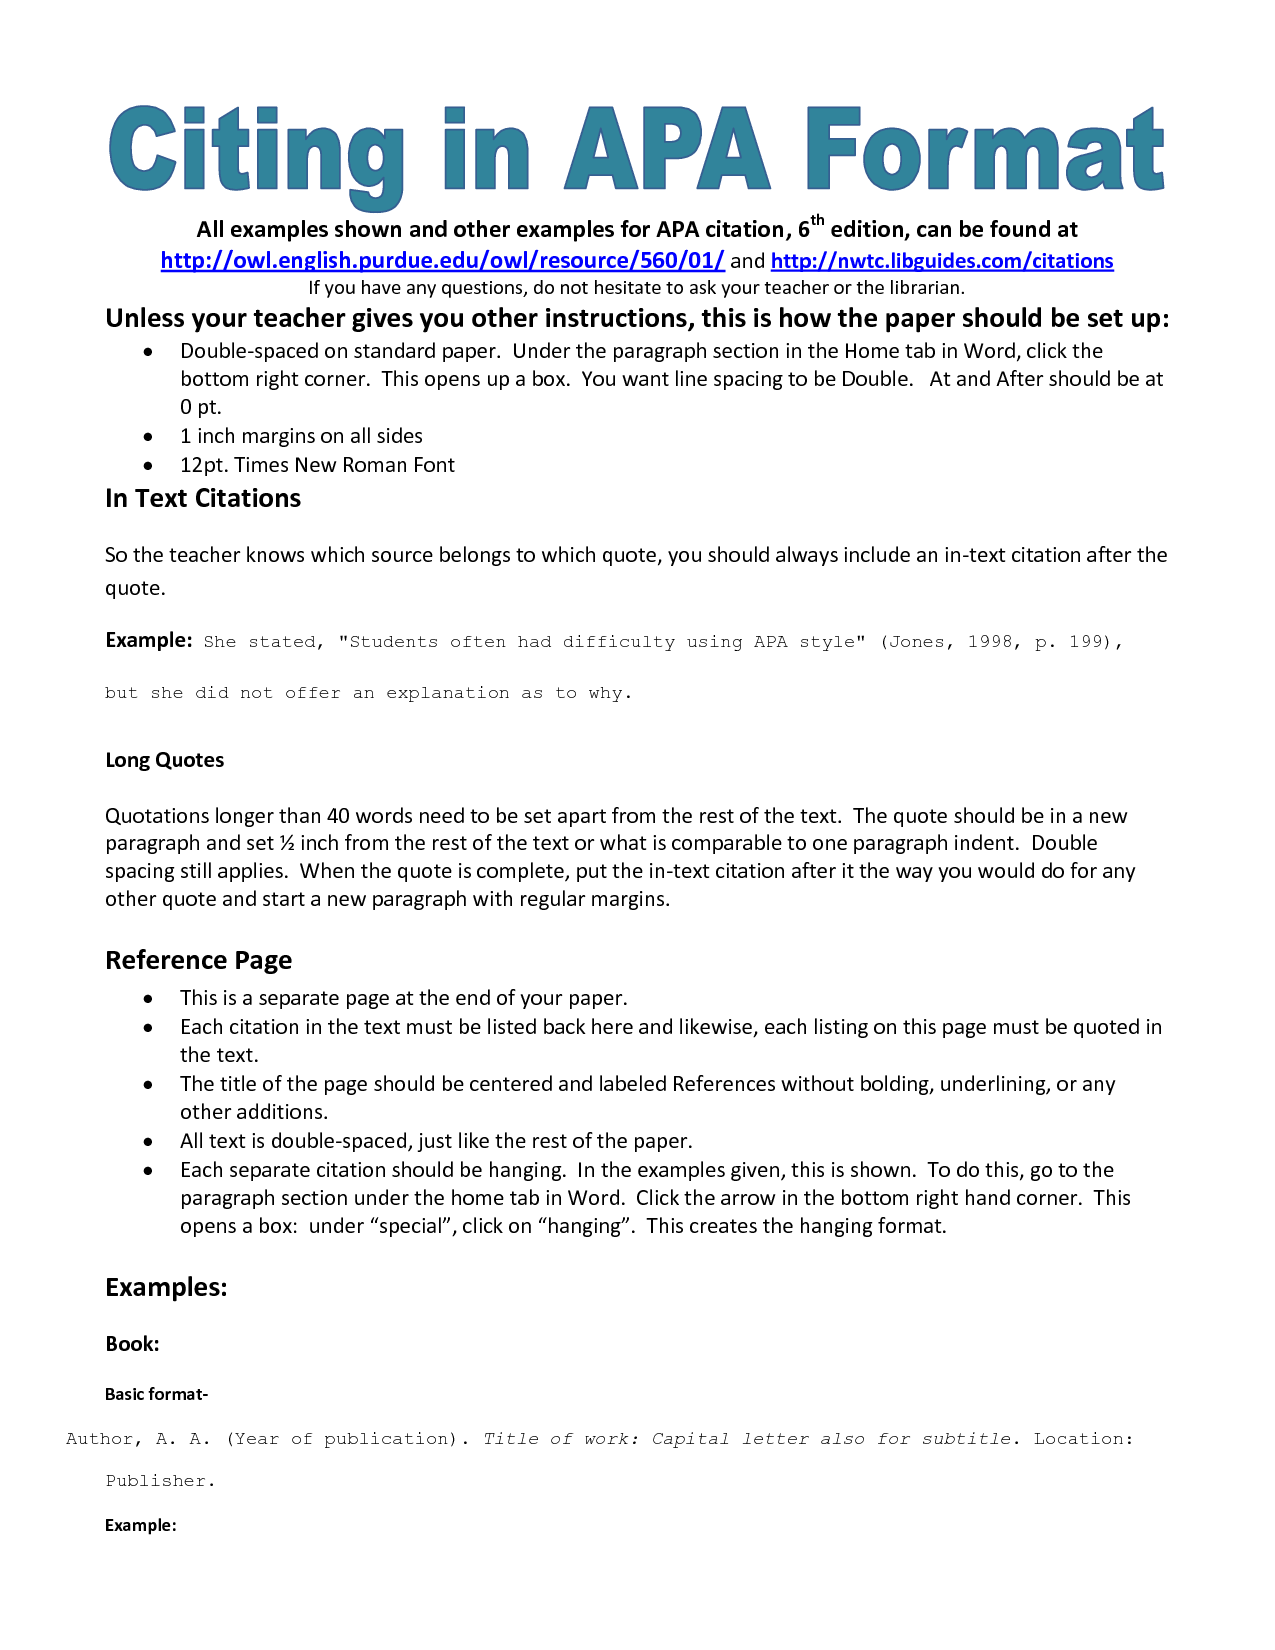 apa format for a paper Apa style essay let's find out some more about apa format it is formatting style which is used for writing academic papers apa is an acronym for american psychological association.